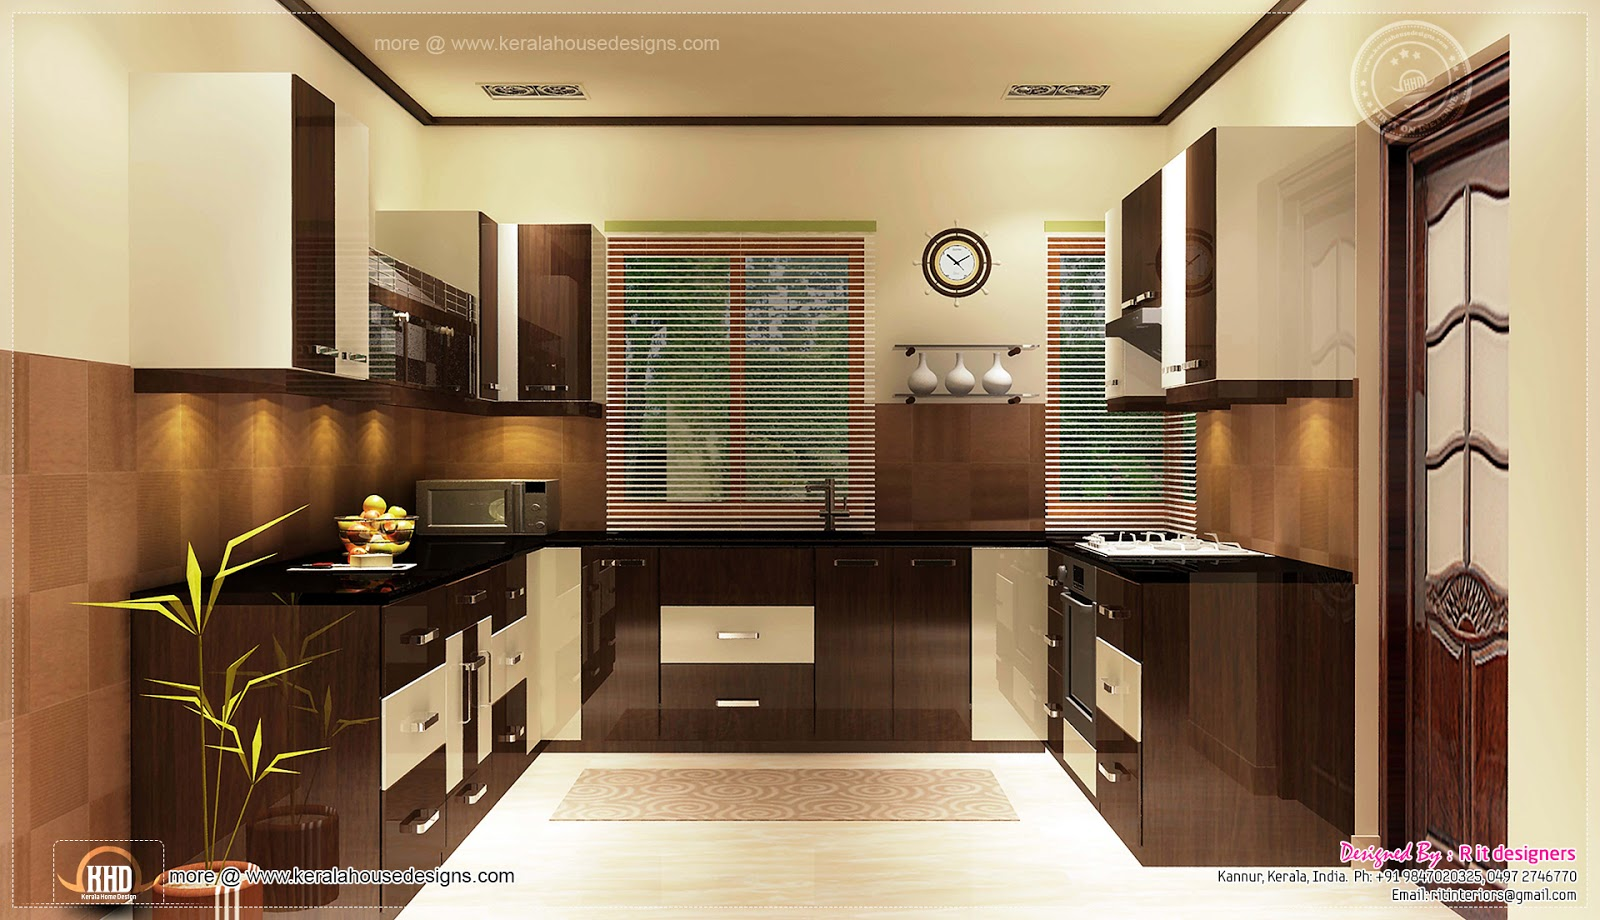 Home interior designs by rit designers kerala home for Home design kitchen decor